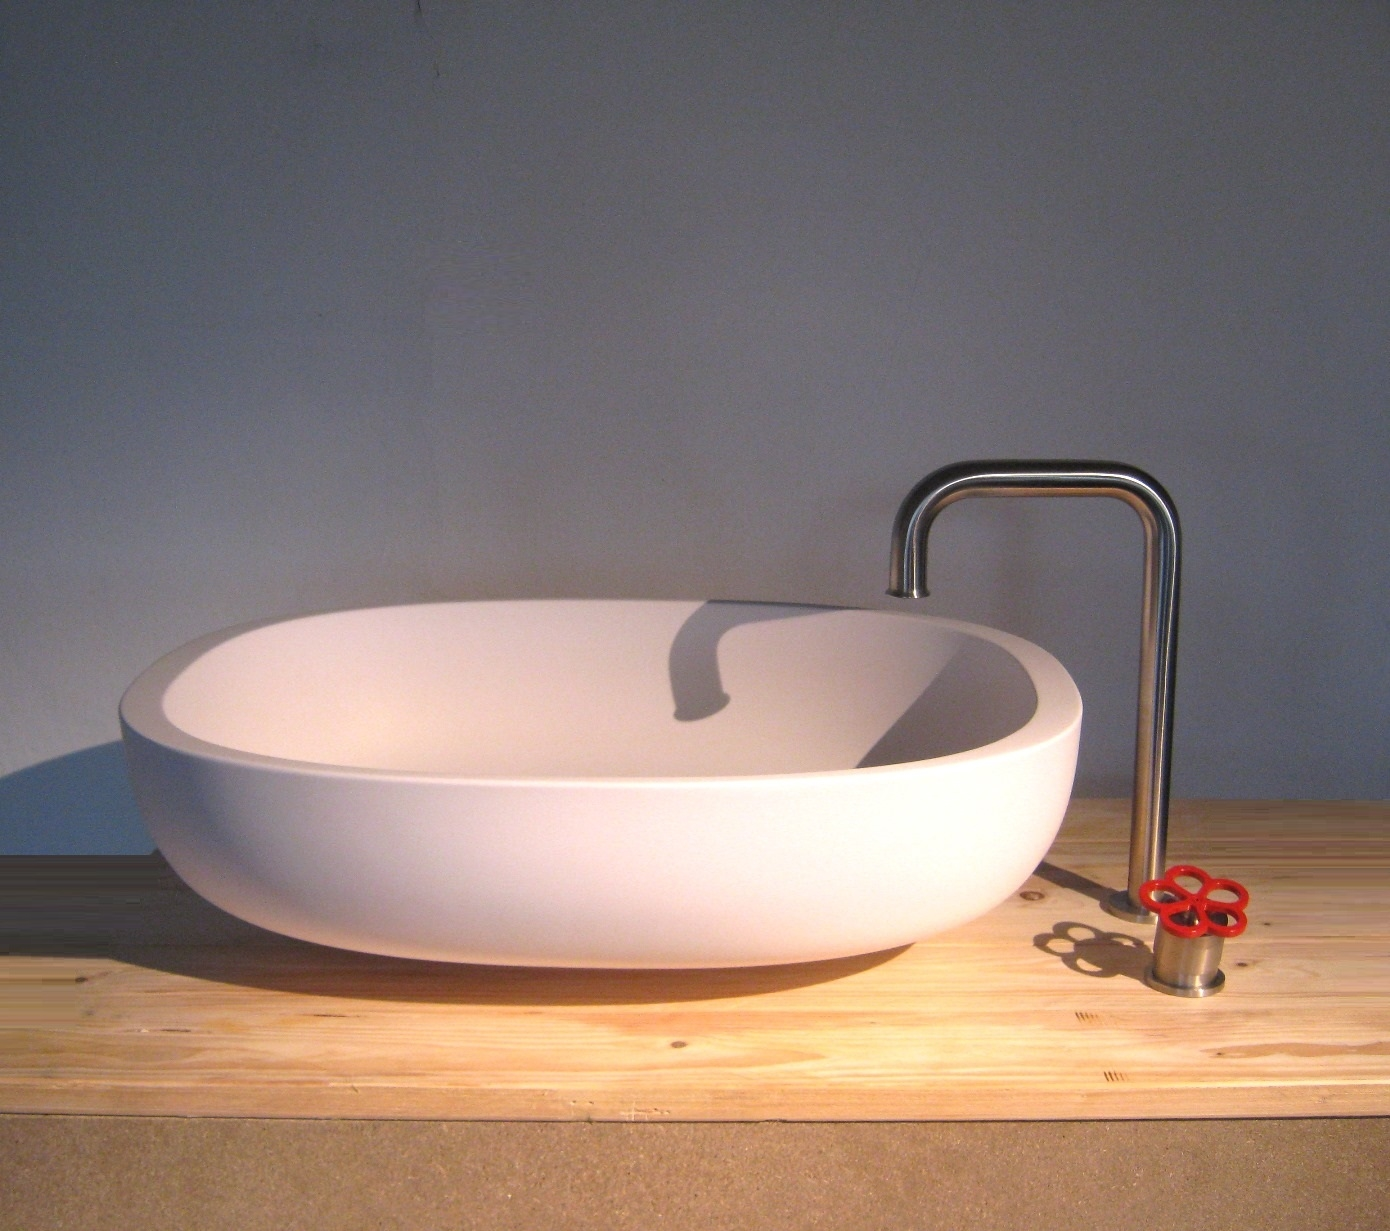 Boffi miscelatore pipe con lavabo iceland boffi bathroom for Lavabo prezzi